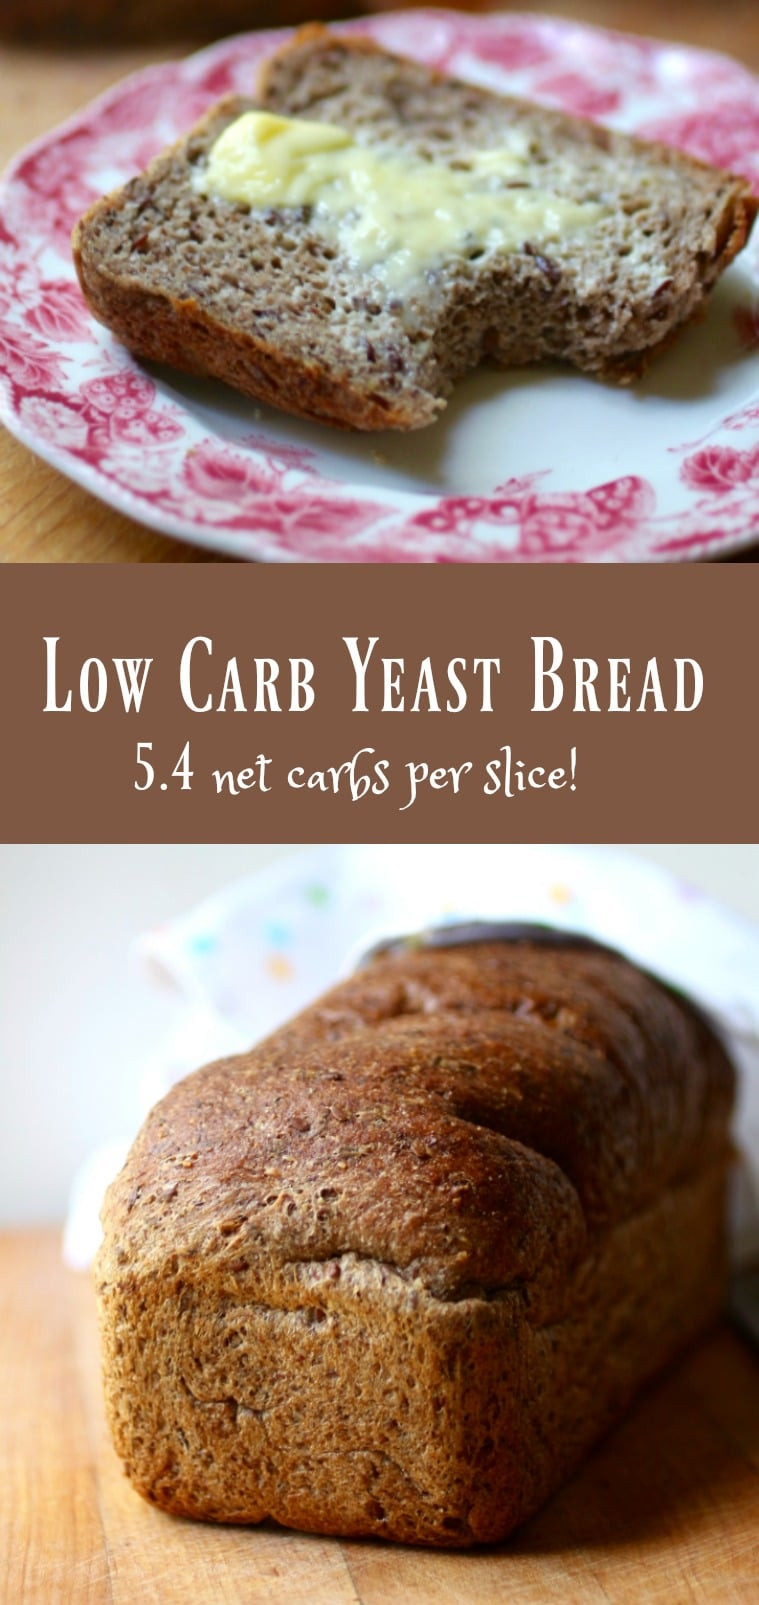 Low Carb Bread Machine Recipes  Low Carb Yeast Bread Keto Sandwich Bread lowcarb ology